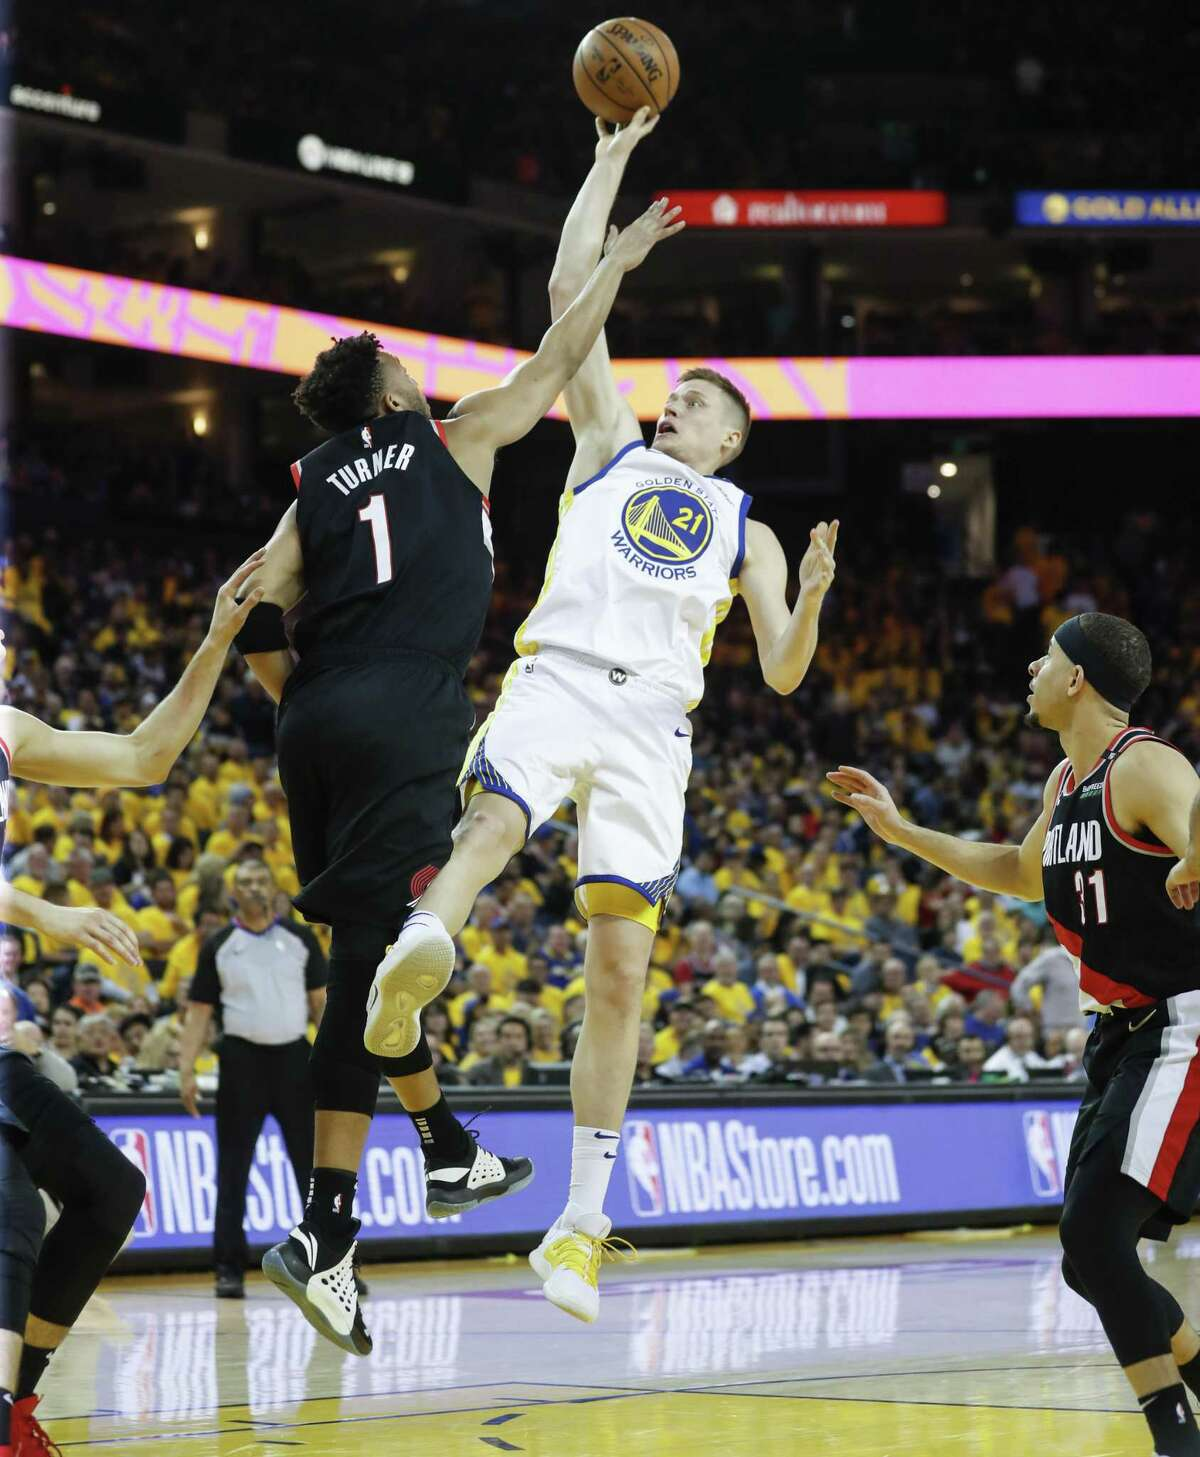 Golden State Warriors Jonas Jerebko shoots over Portland Trail Blazers Evan Turner in the fourth quarter during game 1 of the Western Conference Finals between the Golden State Warriors and the Portland Trail Blazers at Oracle Arena on Tuesday, May 14, 2019 in Oakland, Calif.